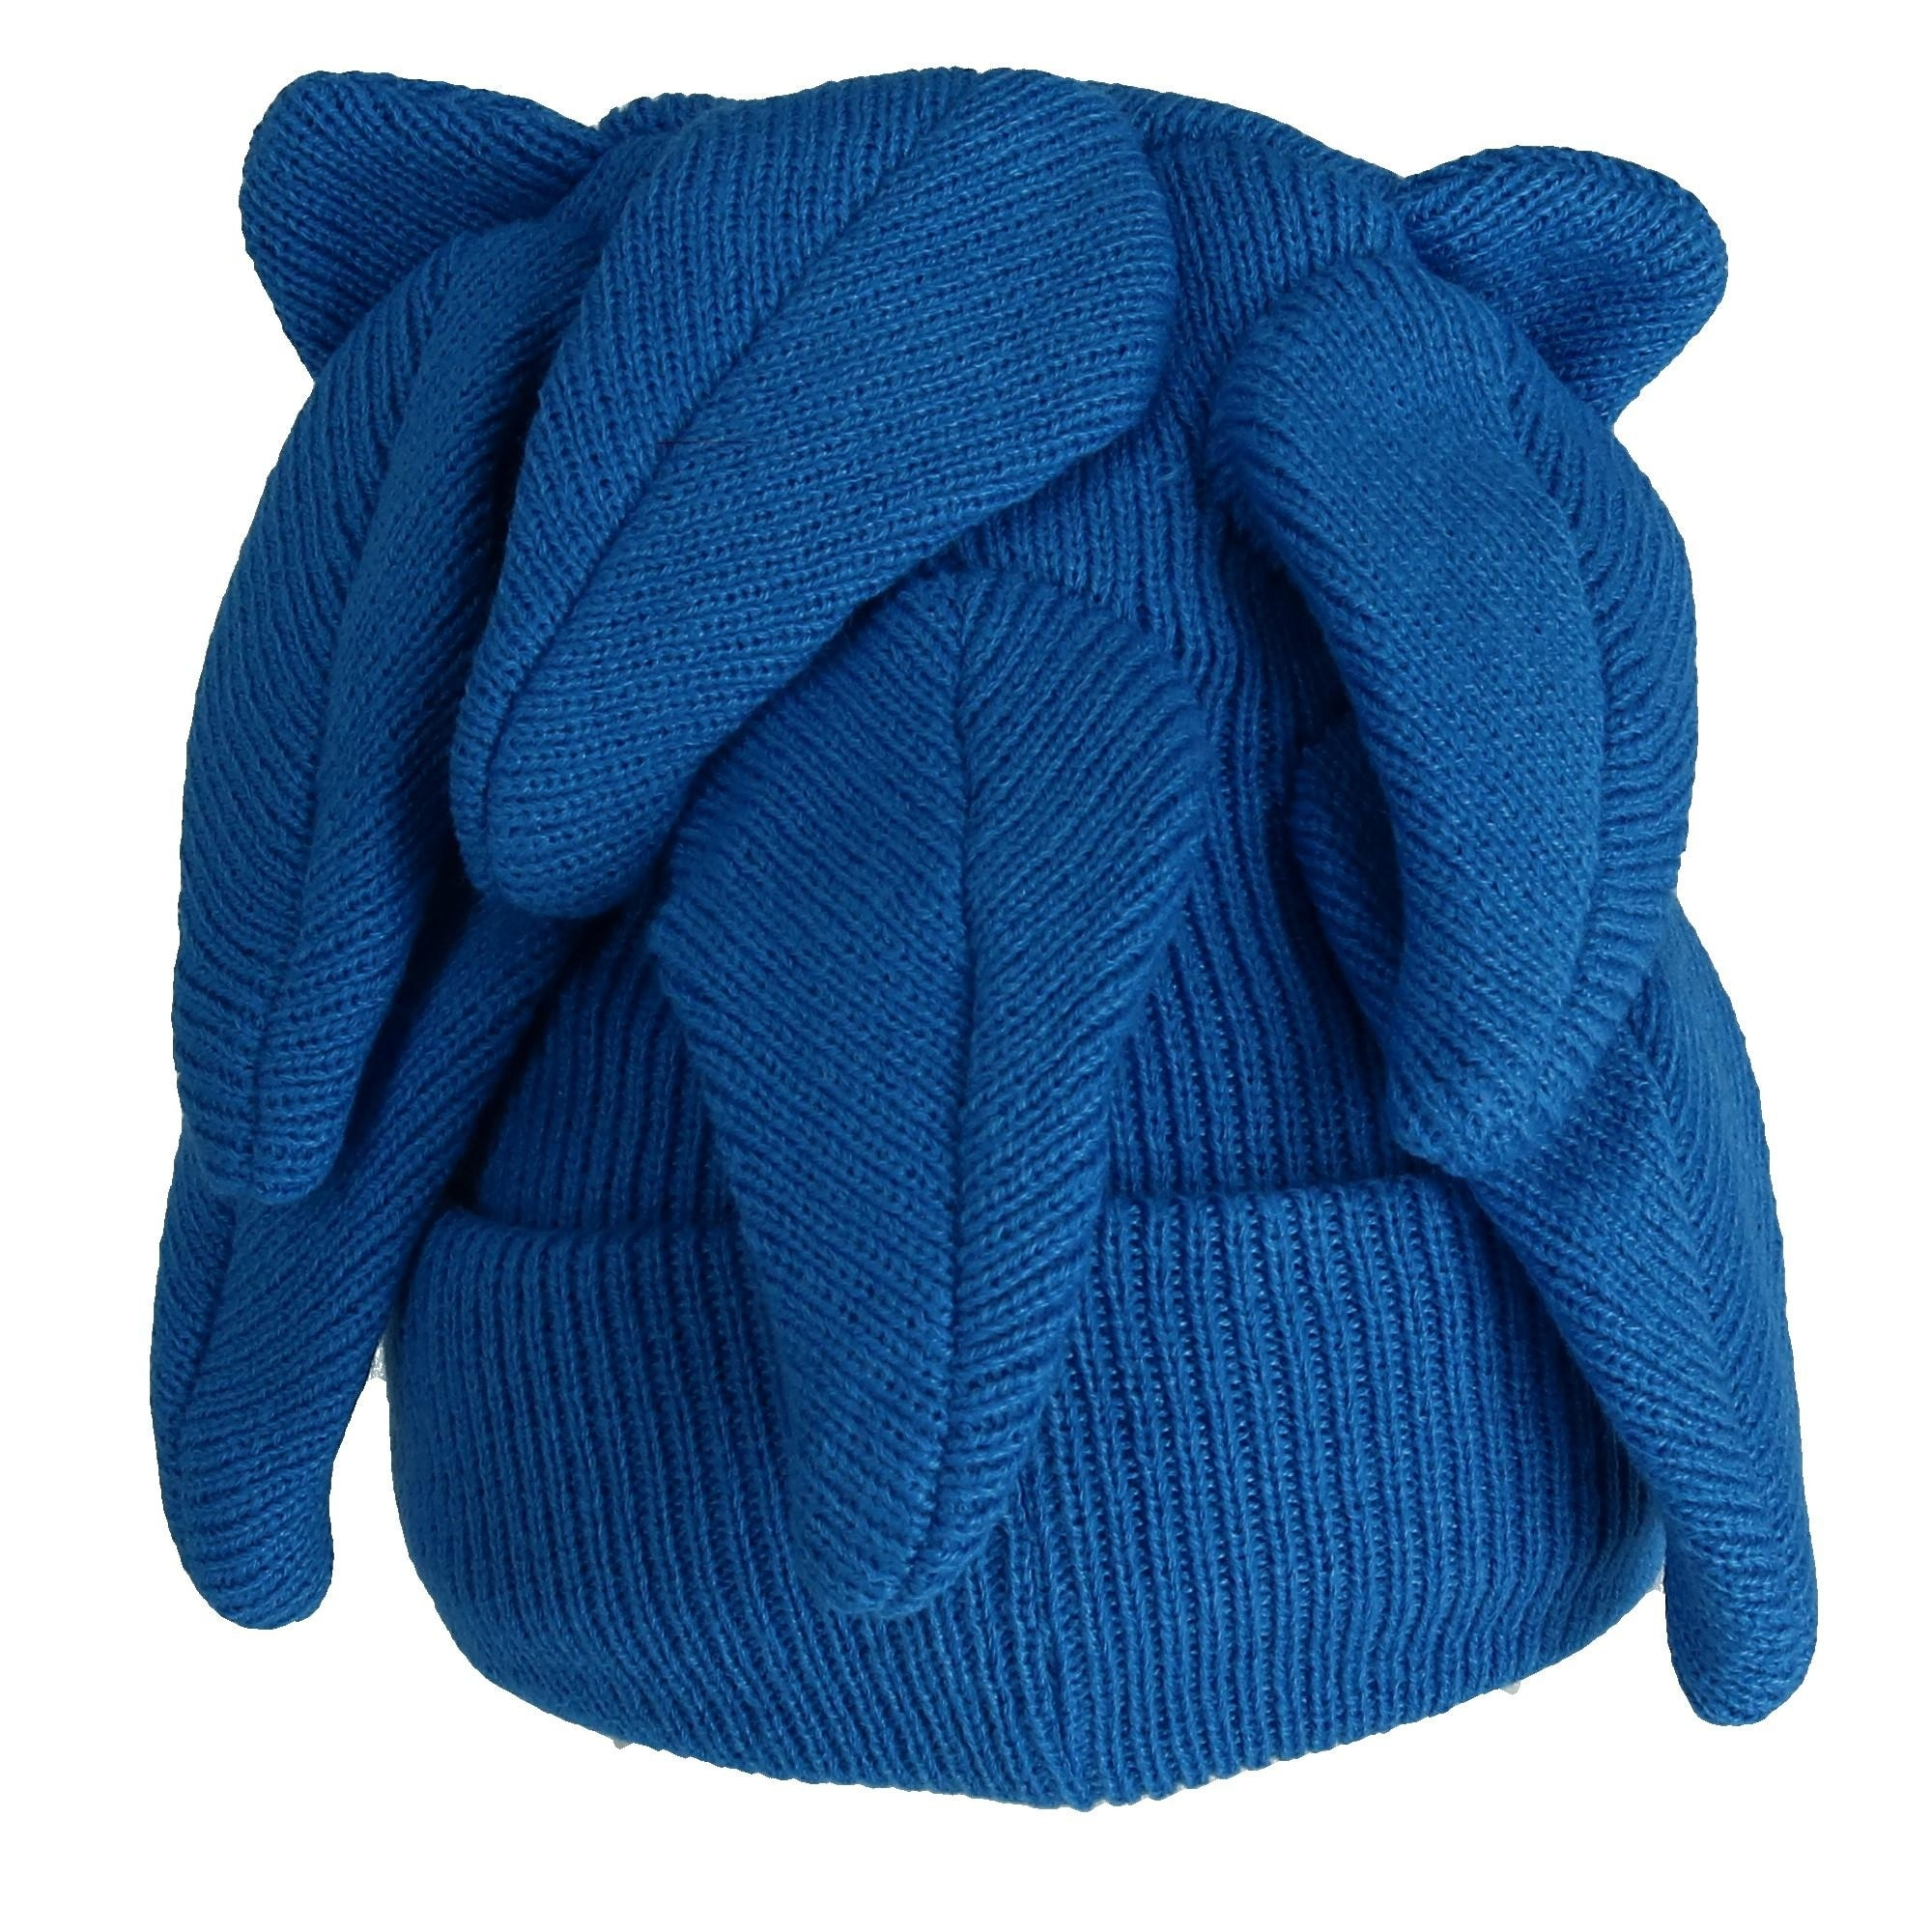 f0a45e03e7b45 Shop BioWorld Sonic Full Face Beanie Cuff Cap with 3D Ears and Spines -  Free Shipping On Orders Over  45 - Overstock - 24206794